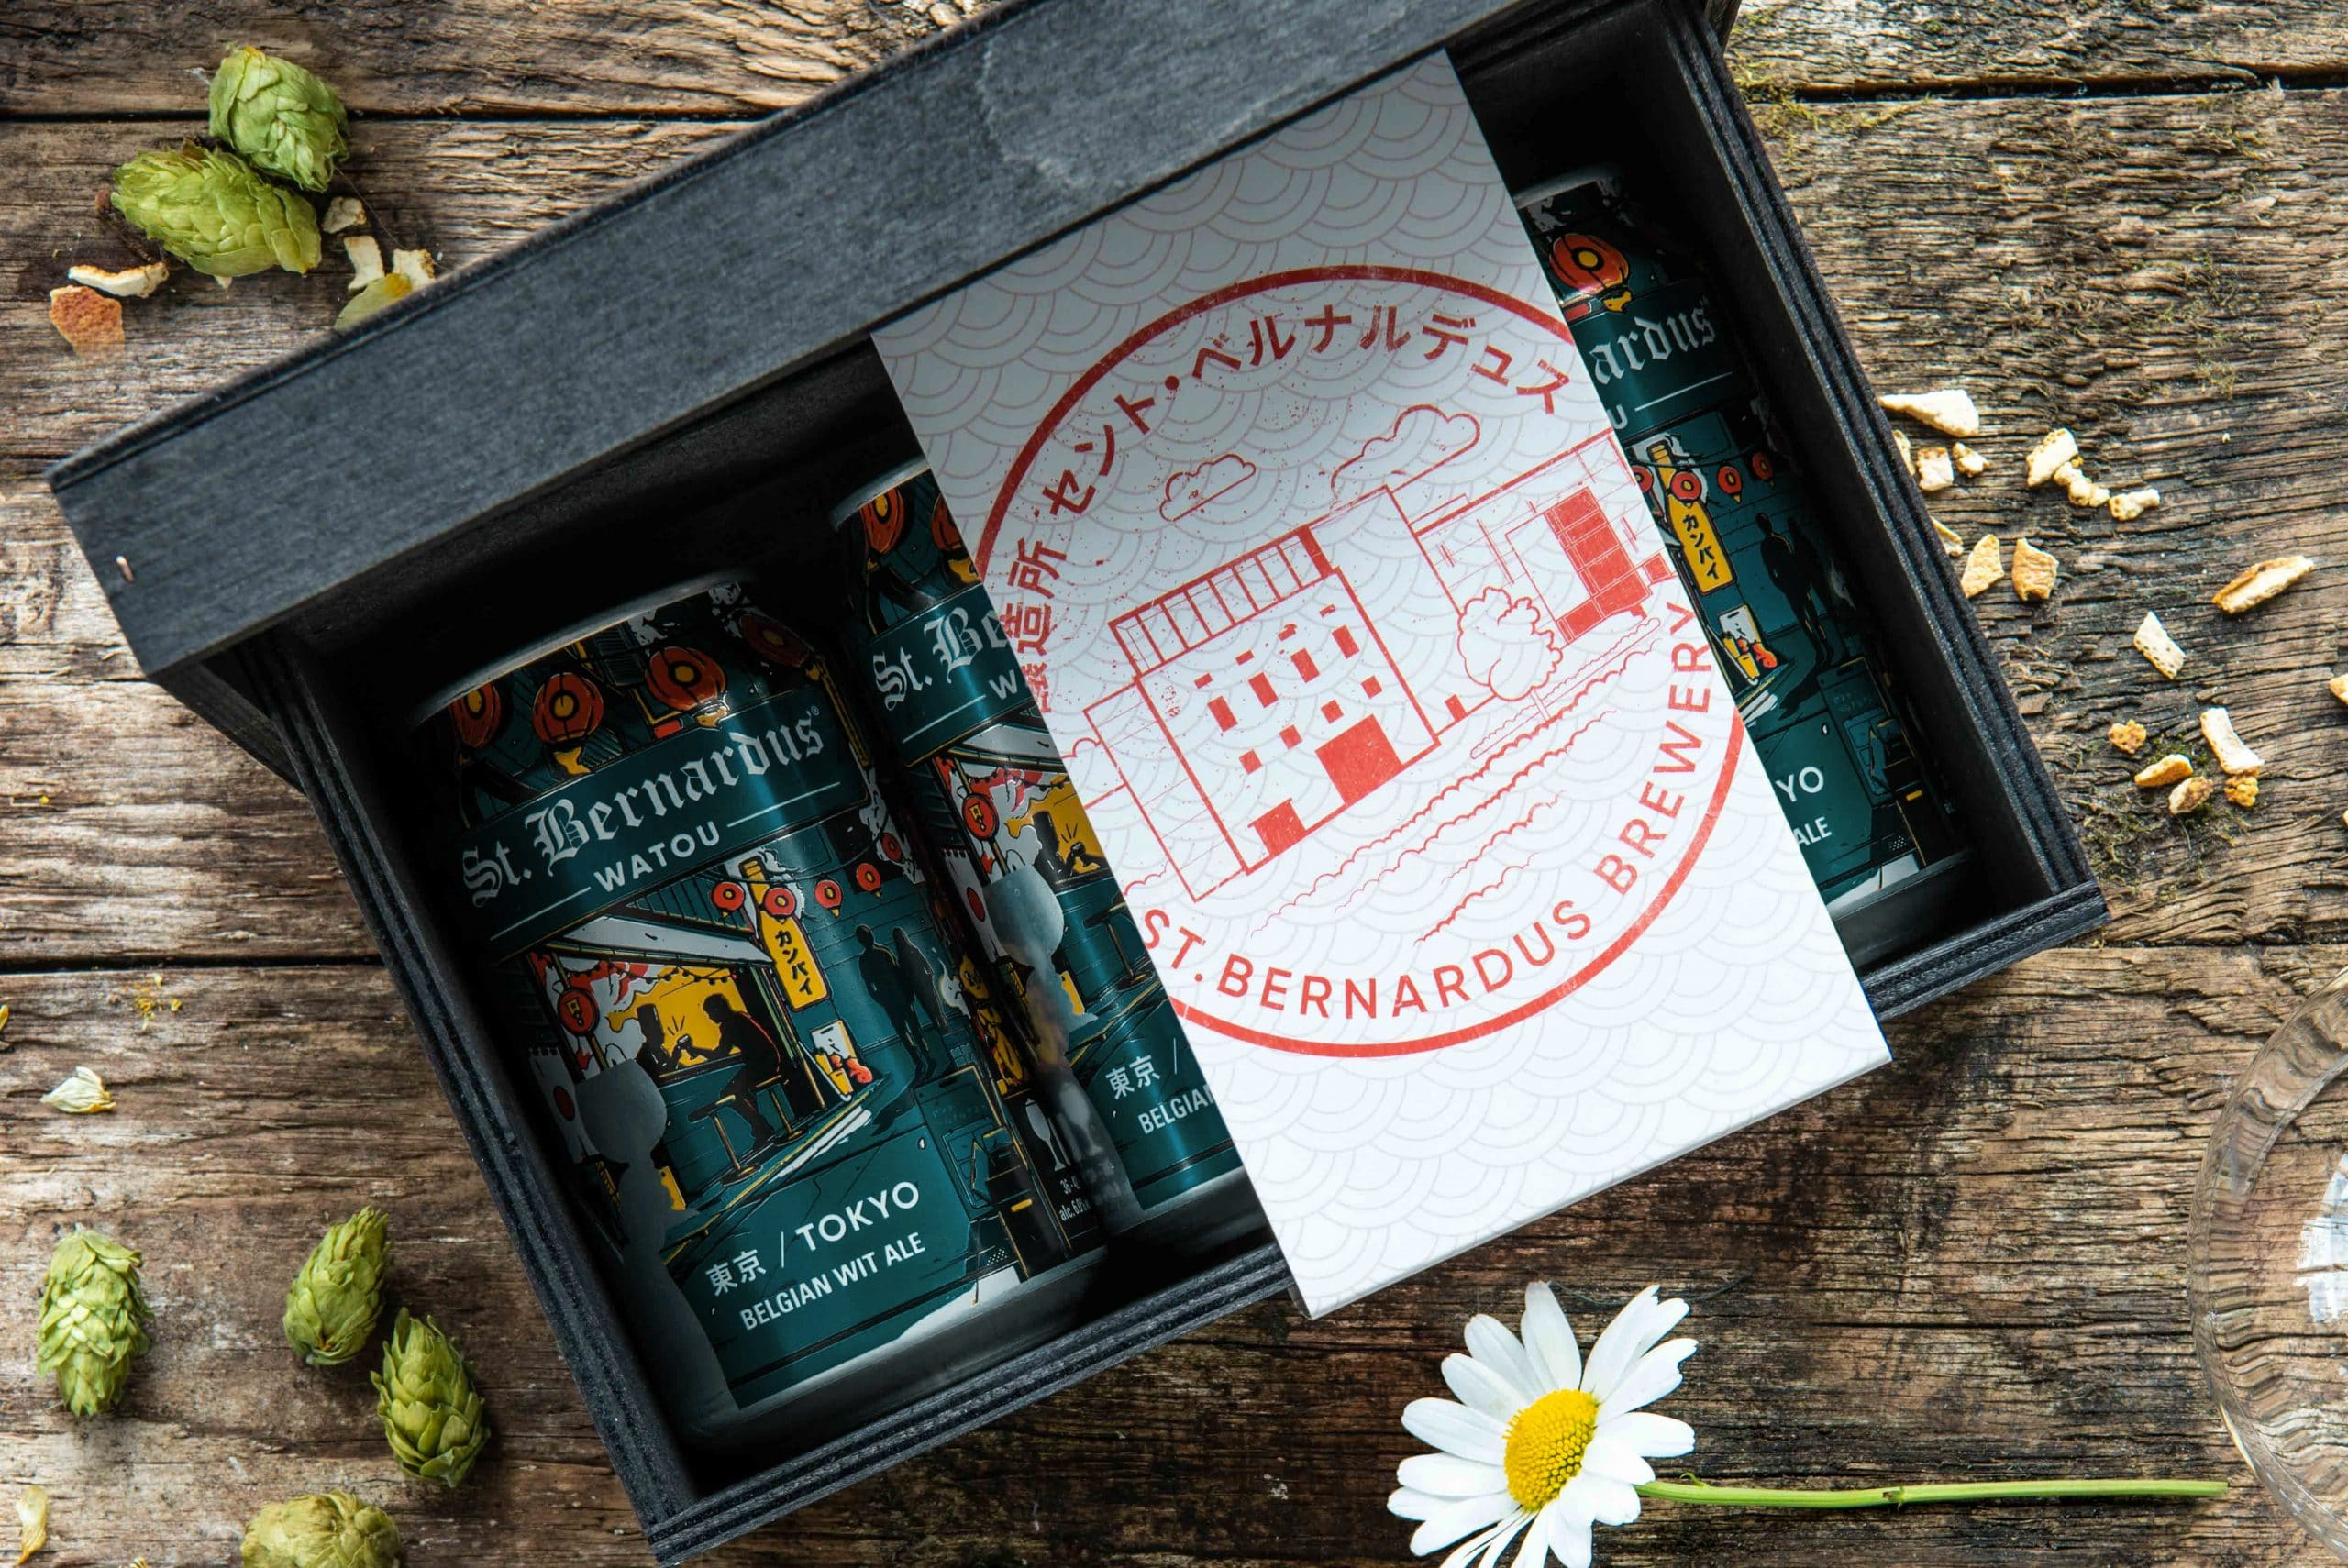 Photoshoot St Bernardus  japanese beer box